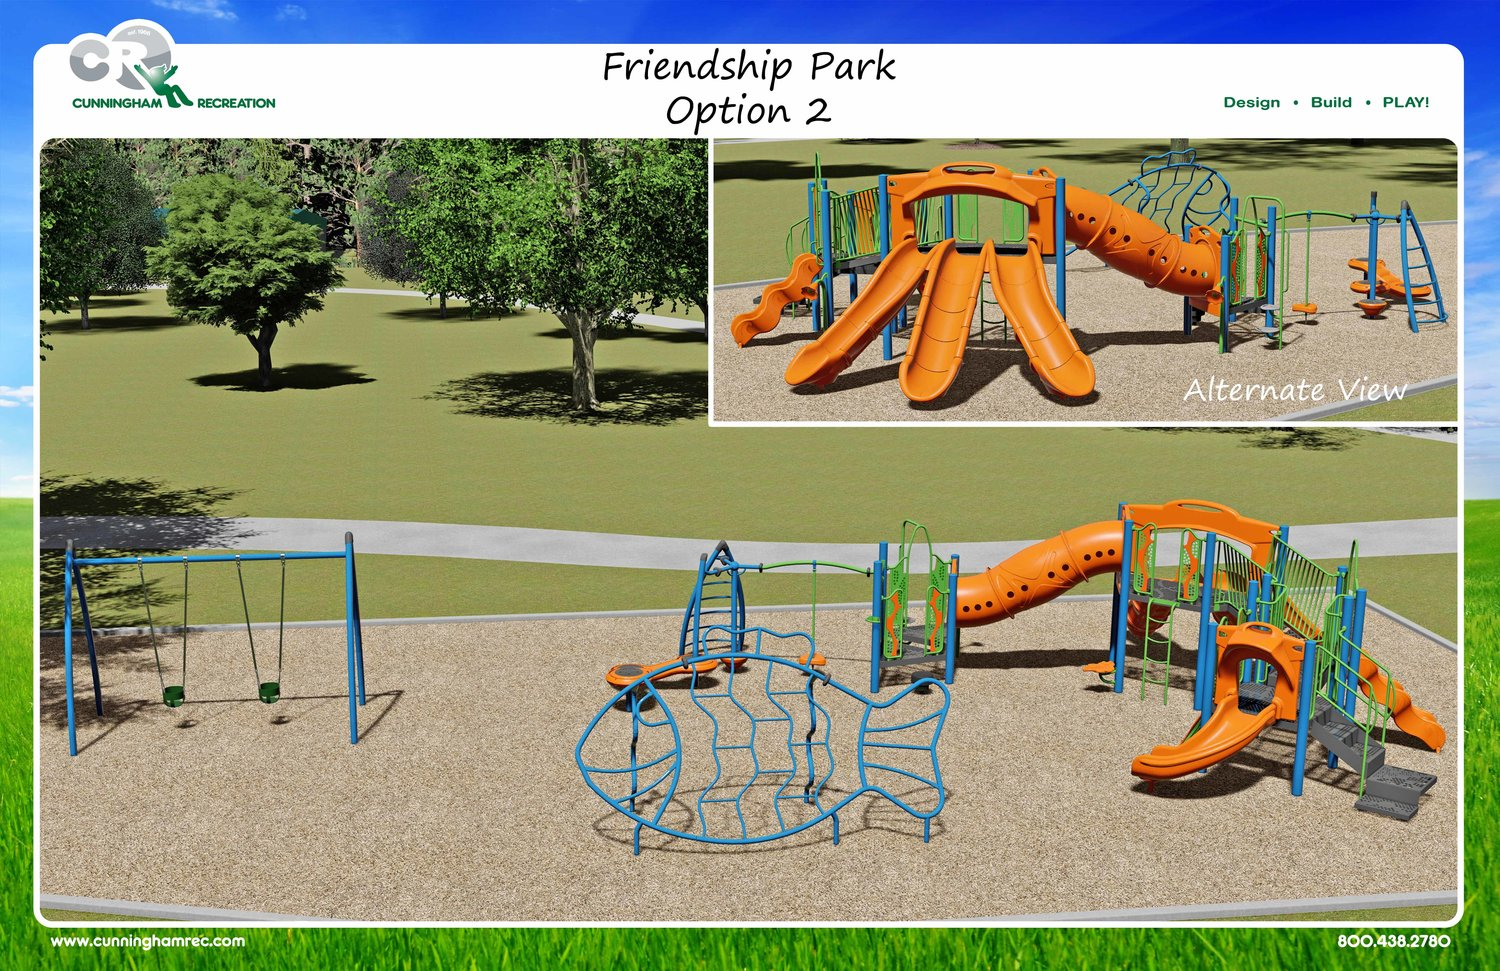 A rendition of the new playground equipment coming to Friendship Park